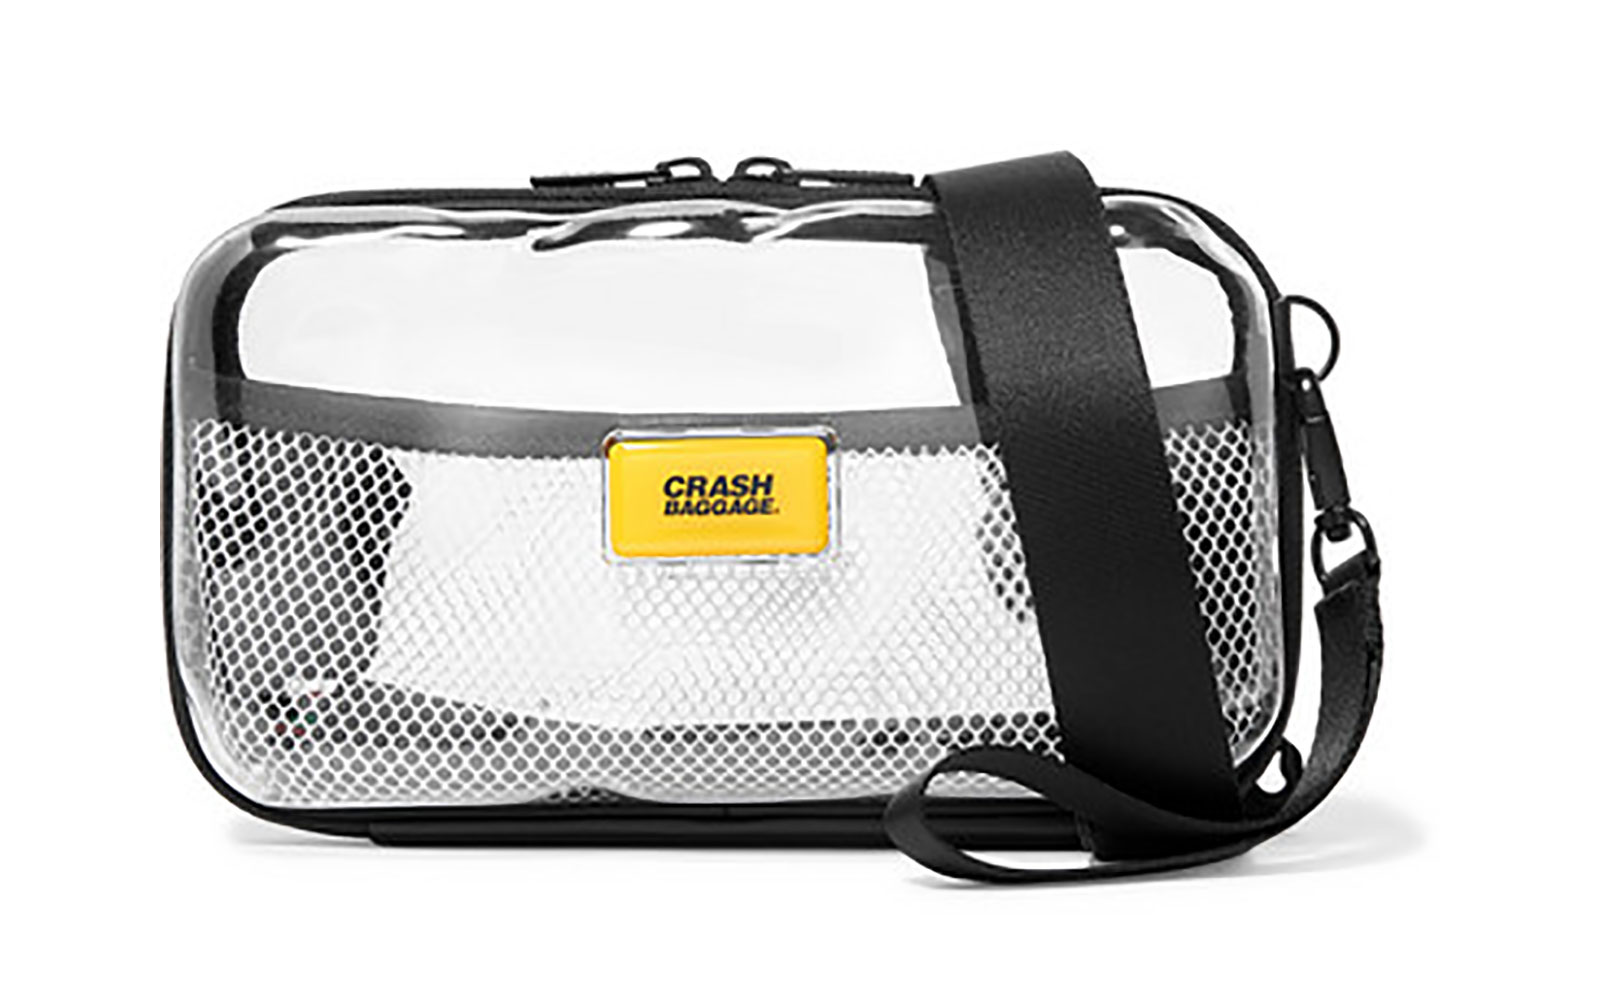 Crash Baggage Hardshell Pouch